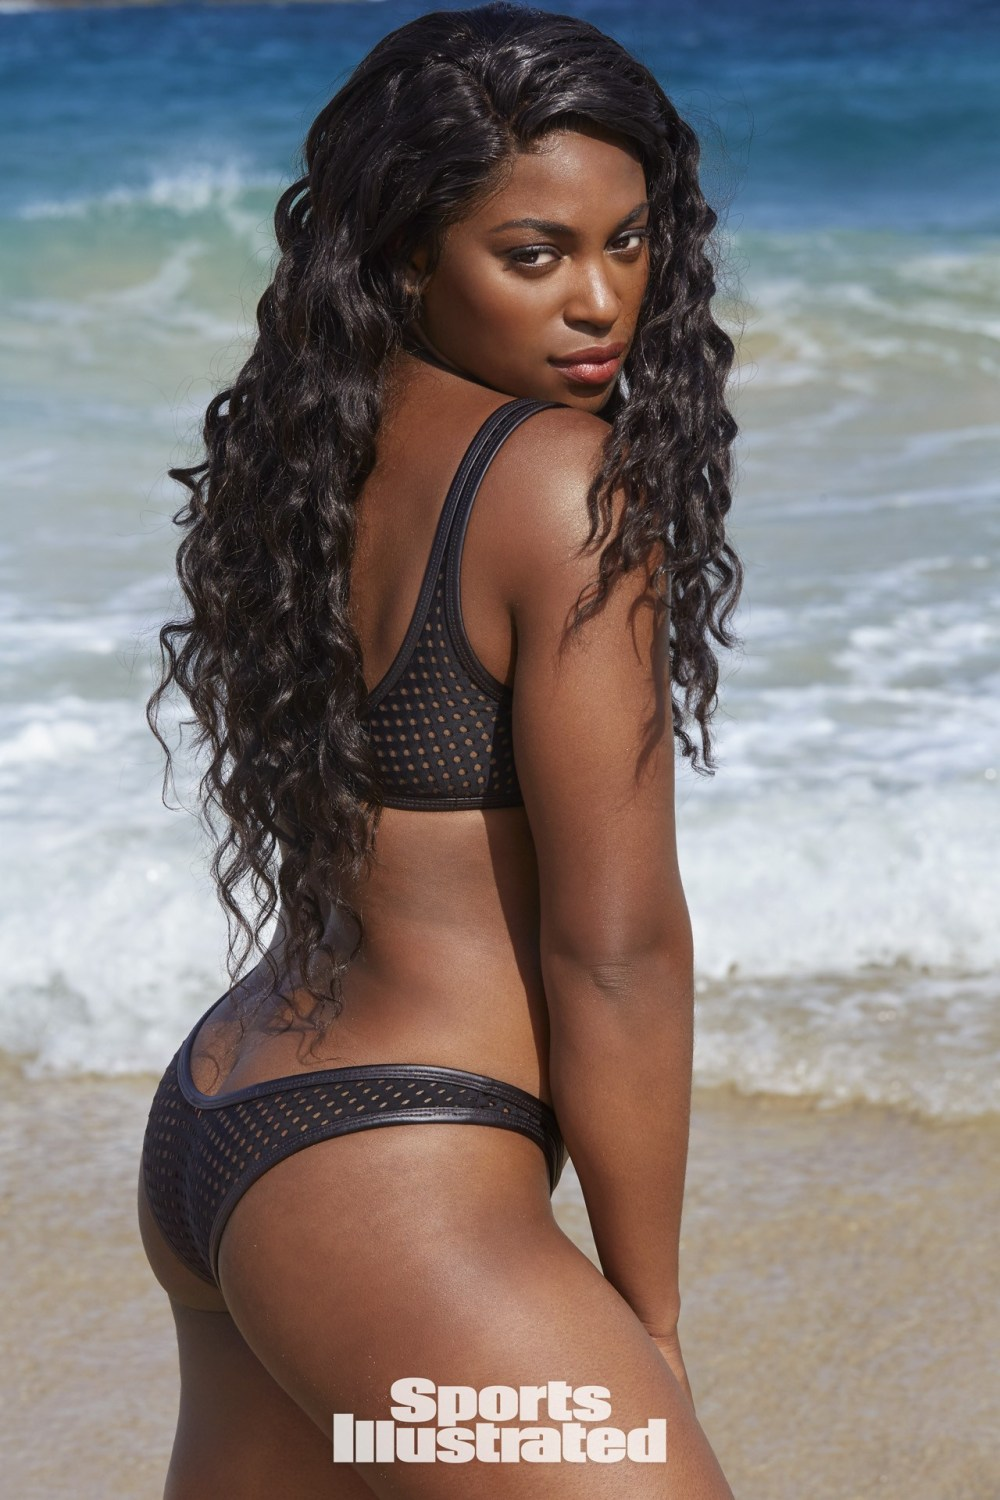 Tennis Star Sloane Stephens poses semi nude for Sports Illustrated (Photos)